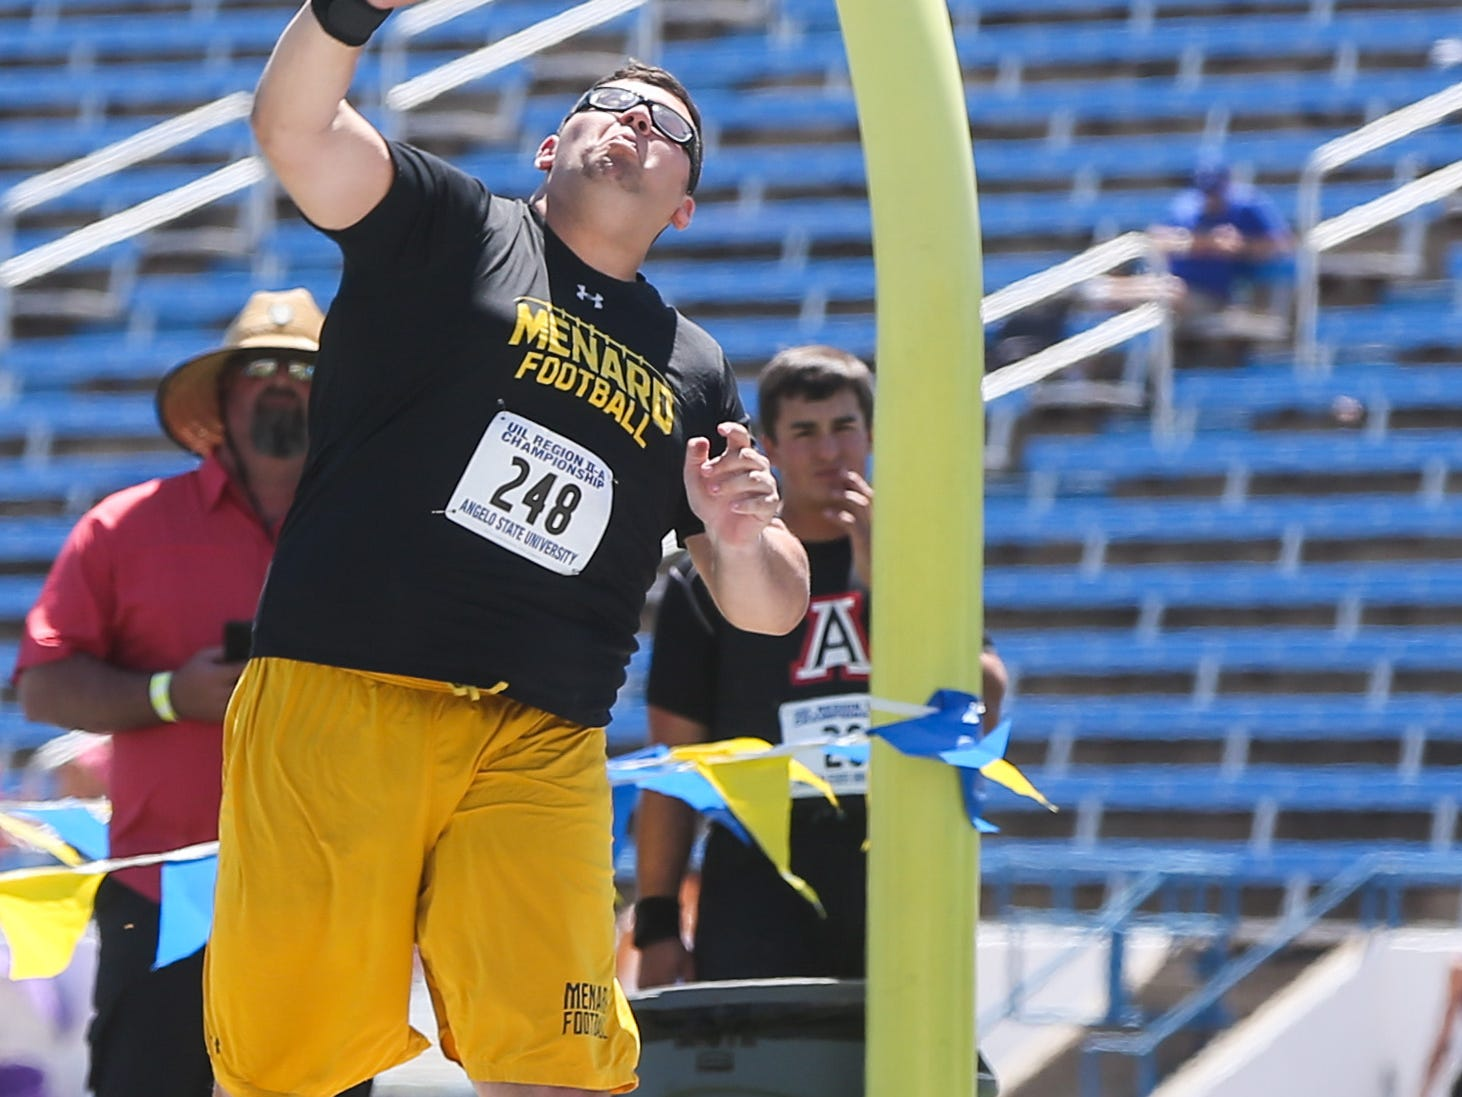 Menard's Mason Stanley throws a shot put during the Region II-1A championships Friday, April 26, 2019, at Angelo State University.